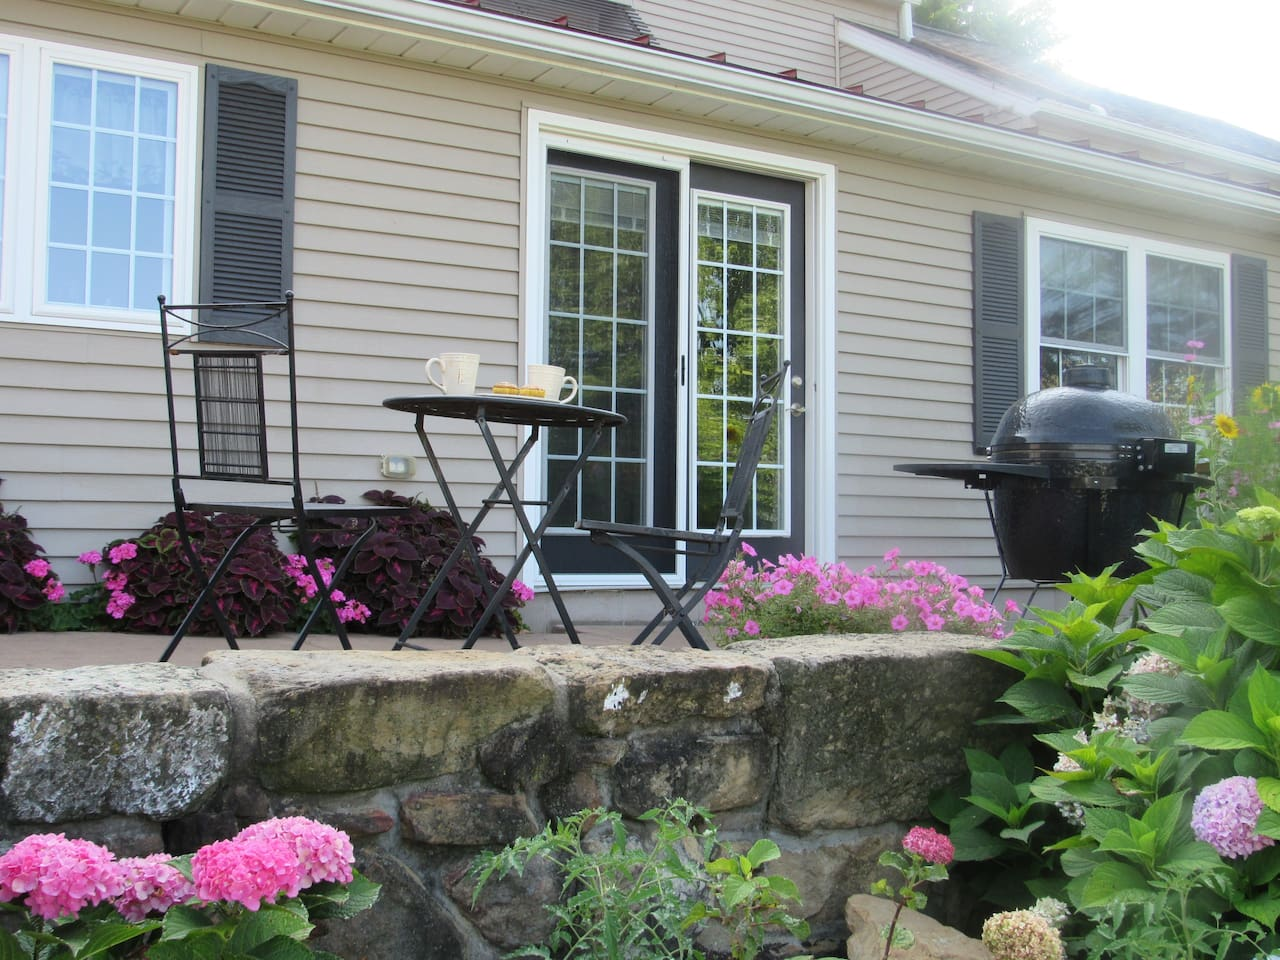 Enjoy your morning coffee on the patio